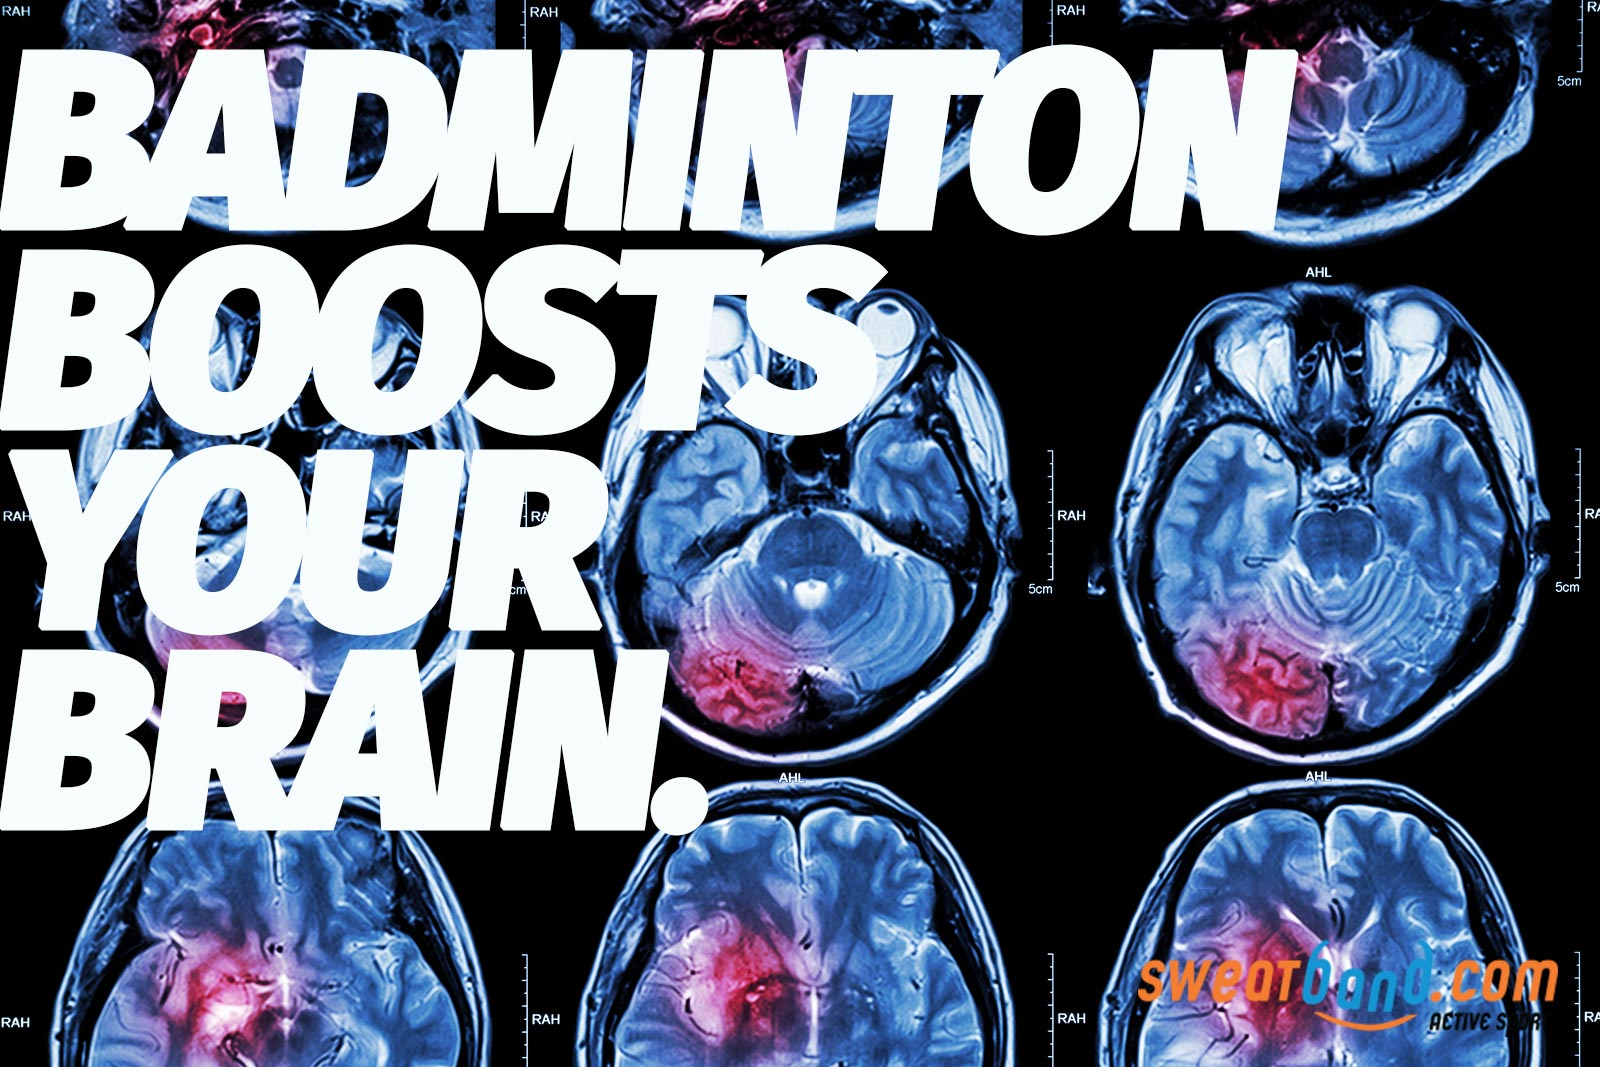 Playing badminton can give your brain a workout too!